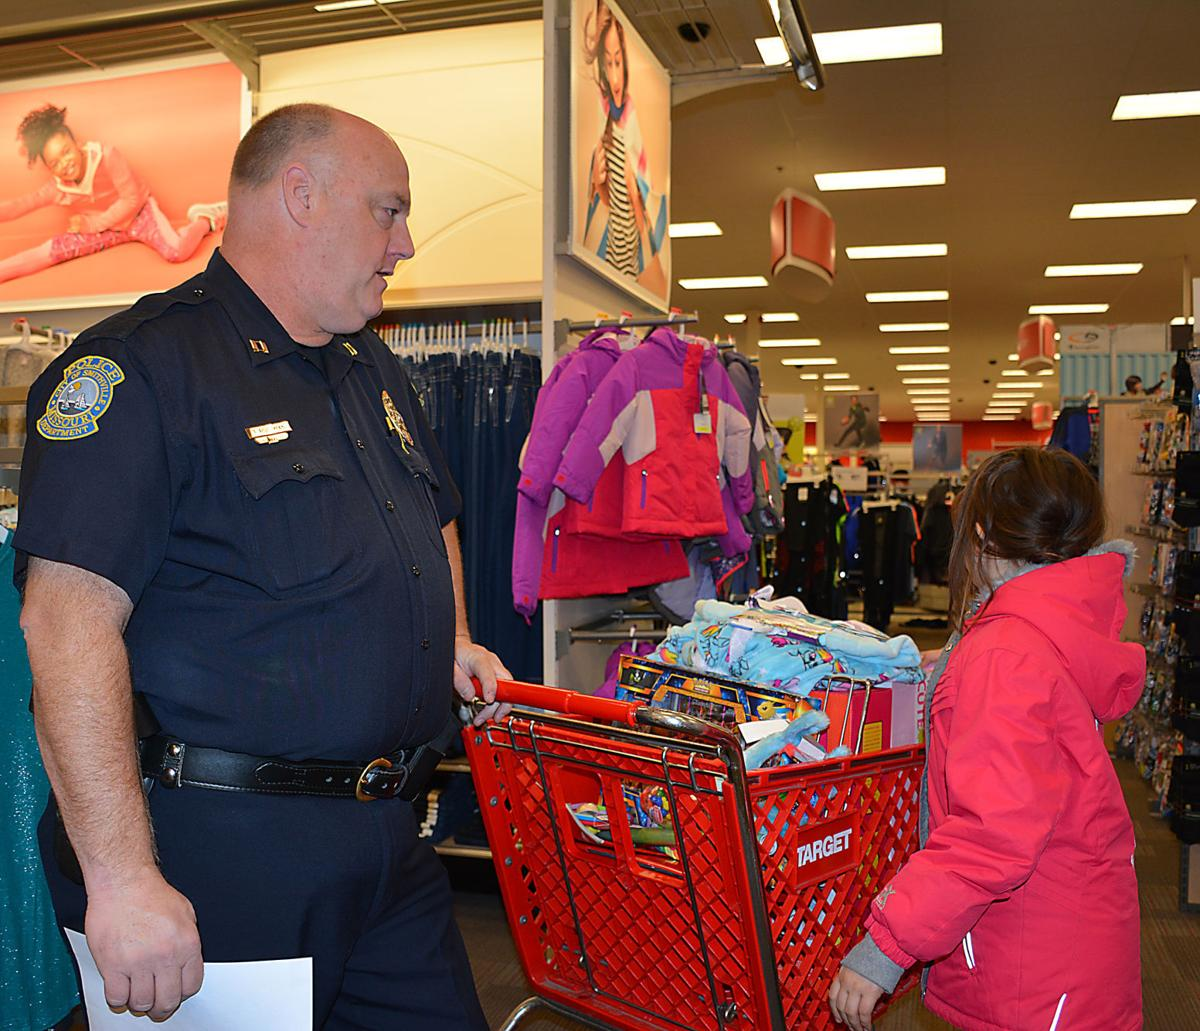 Cops target holiday spirit with shopping sprees